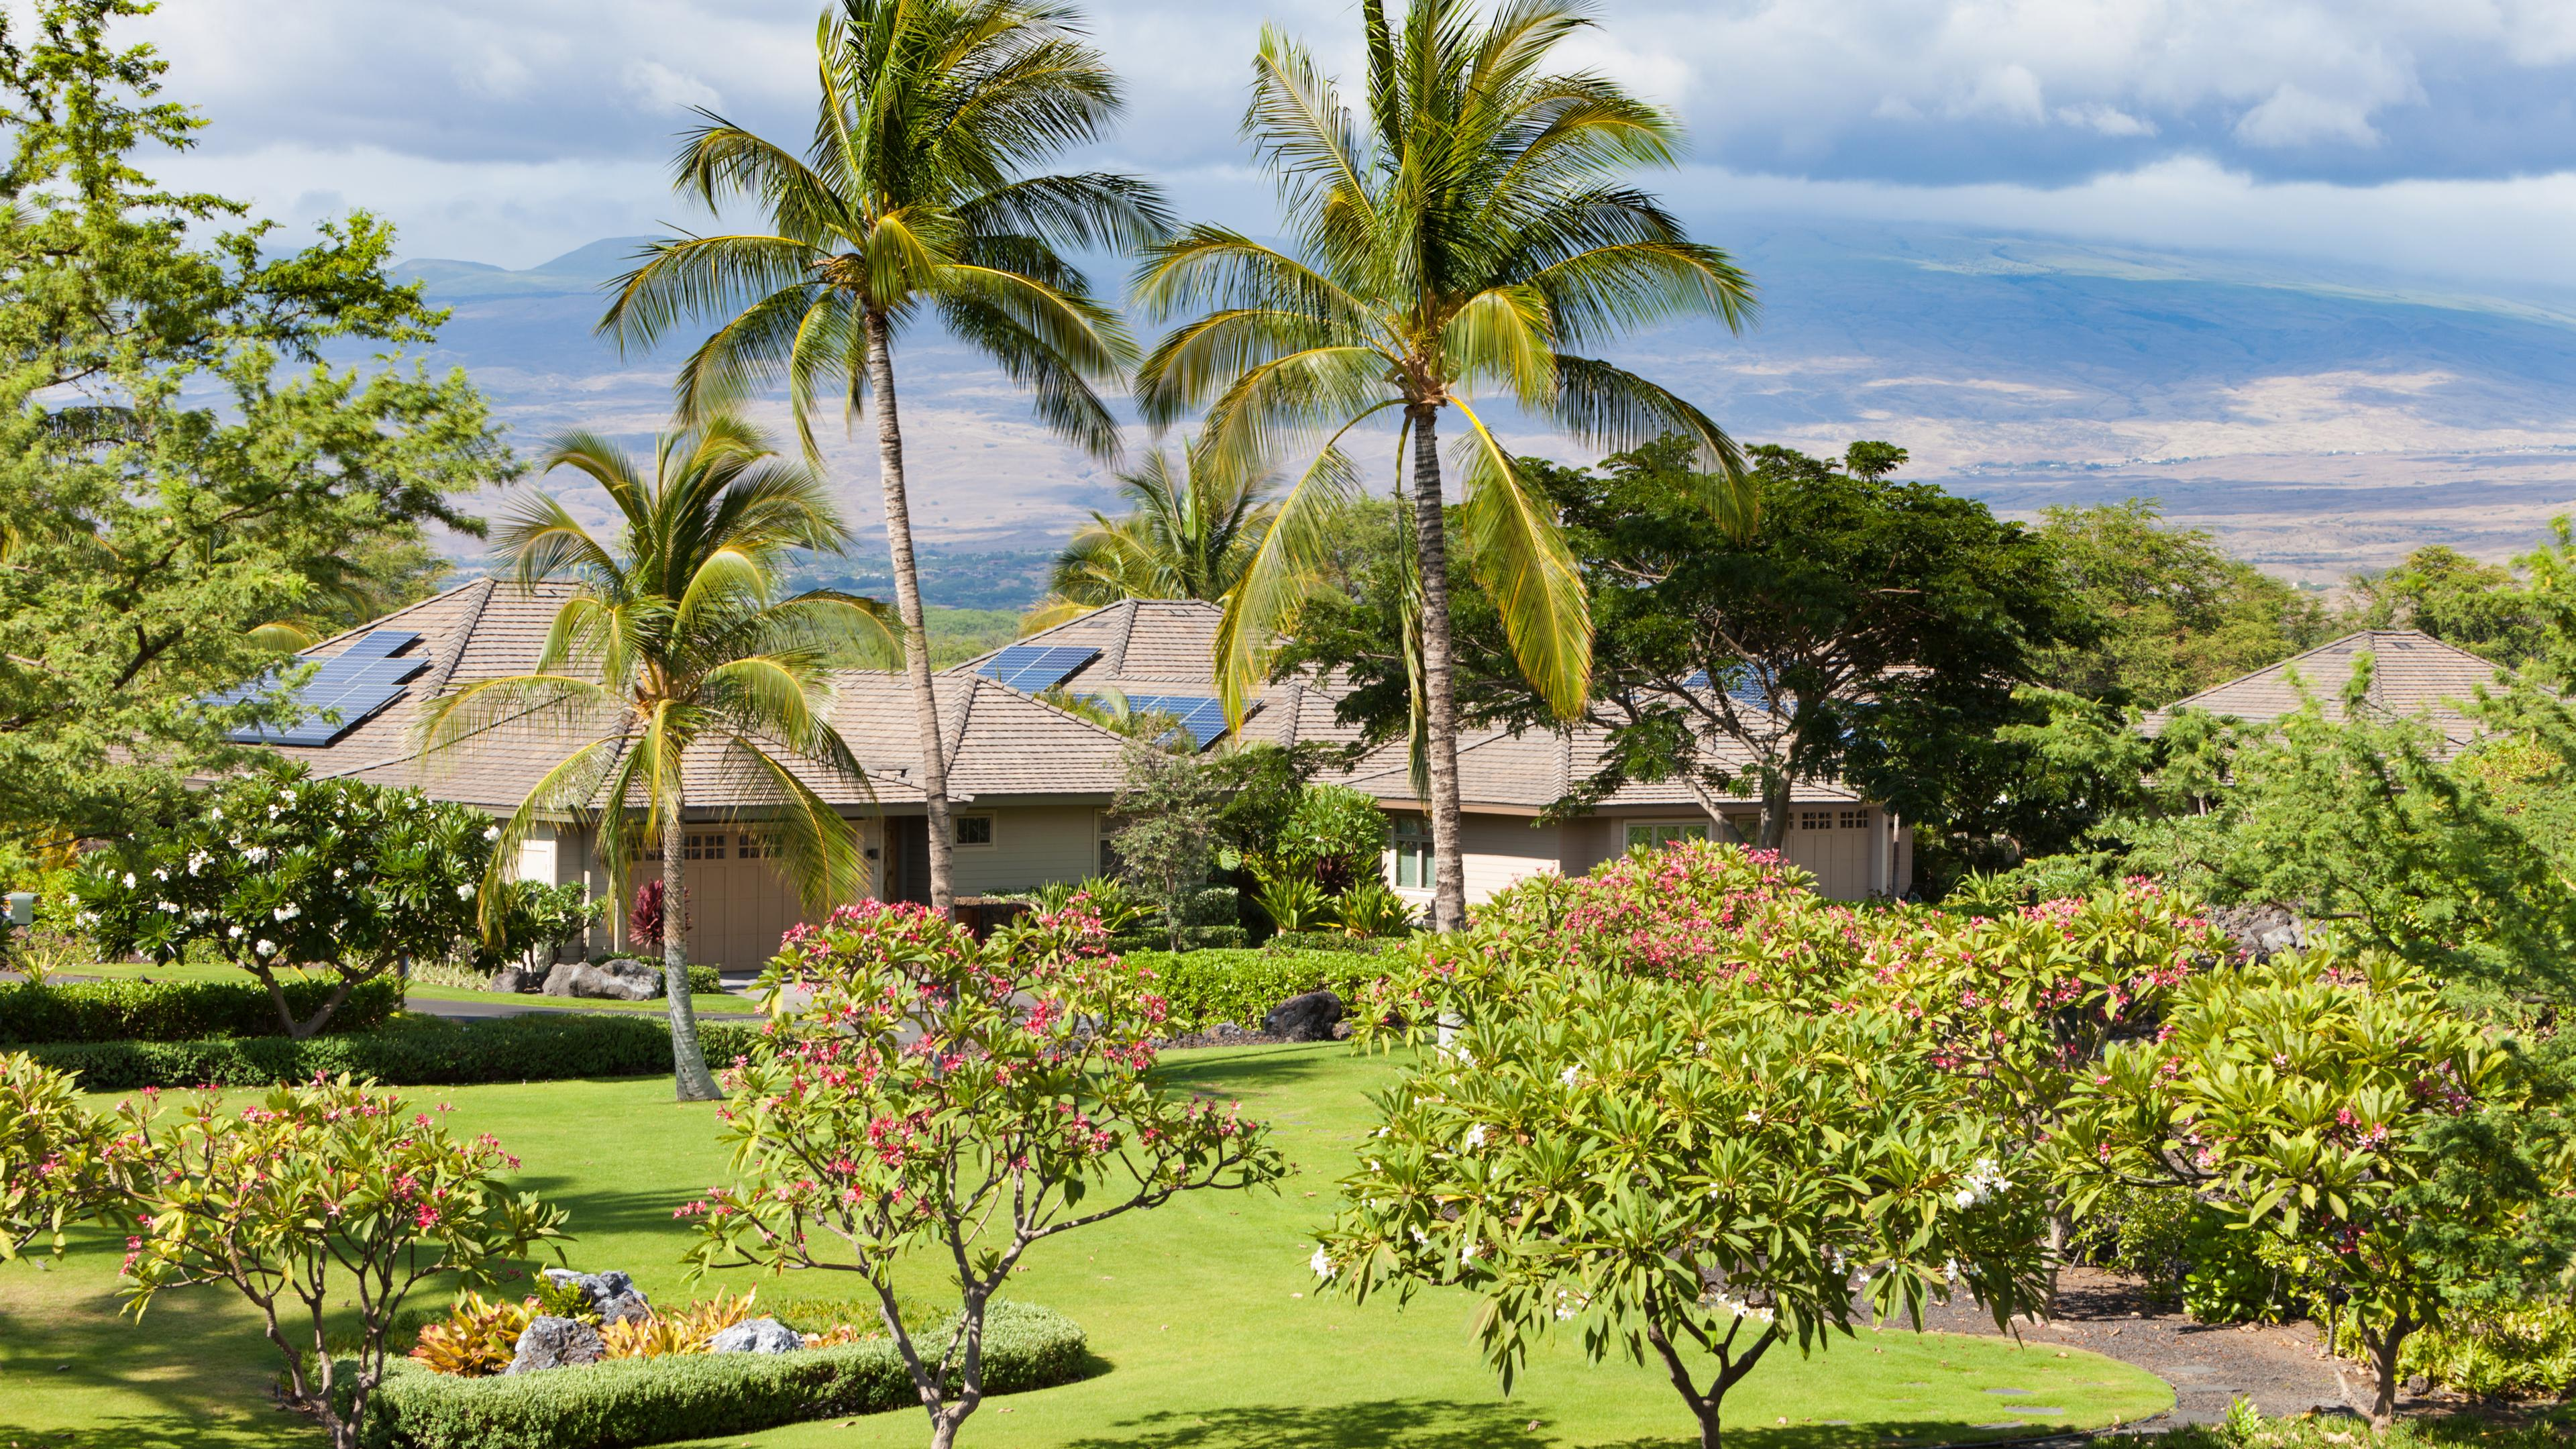 Overlooking the putting green and gardens and Kohala Mountain